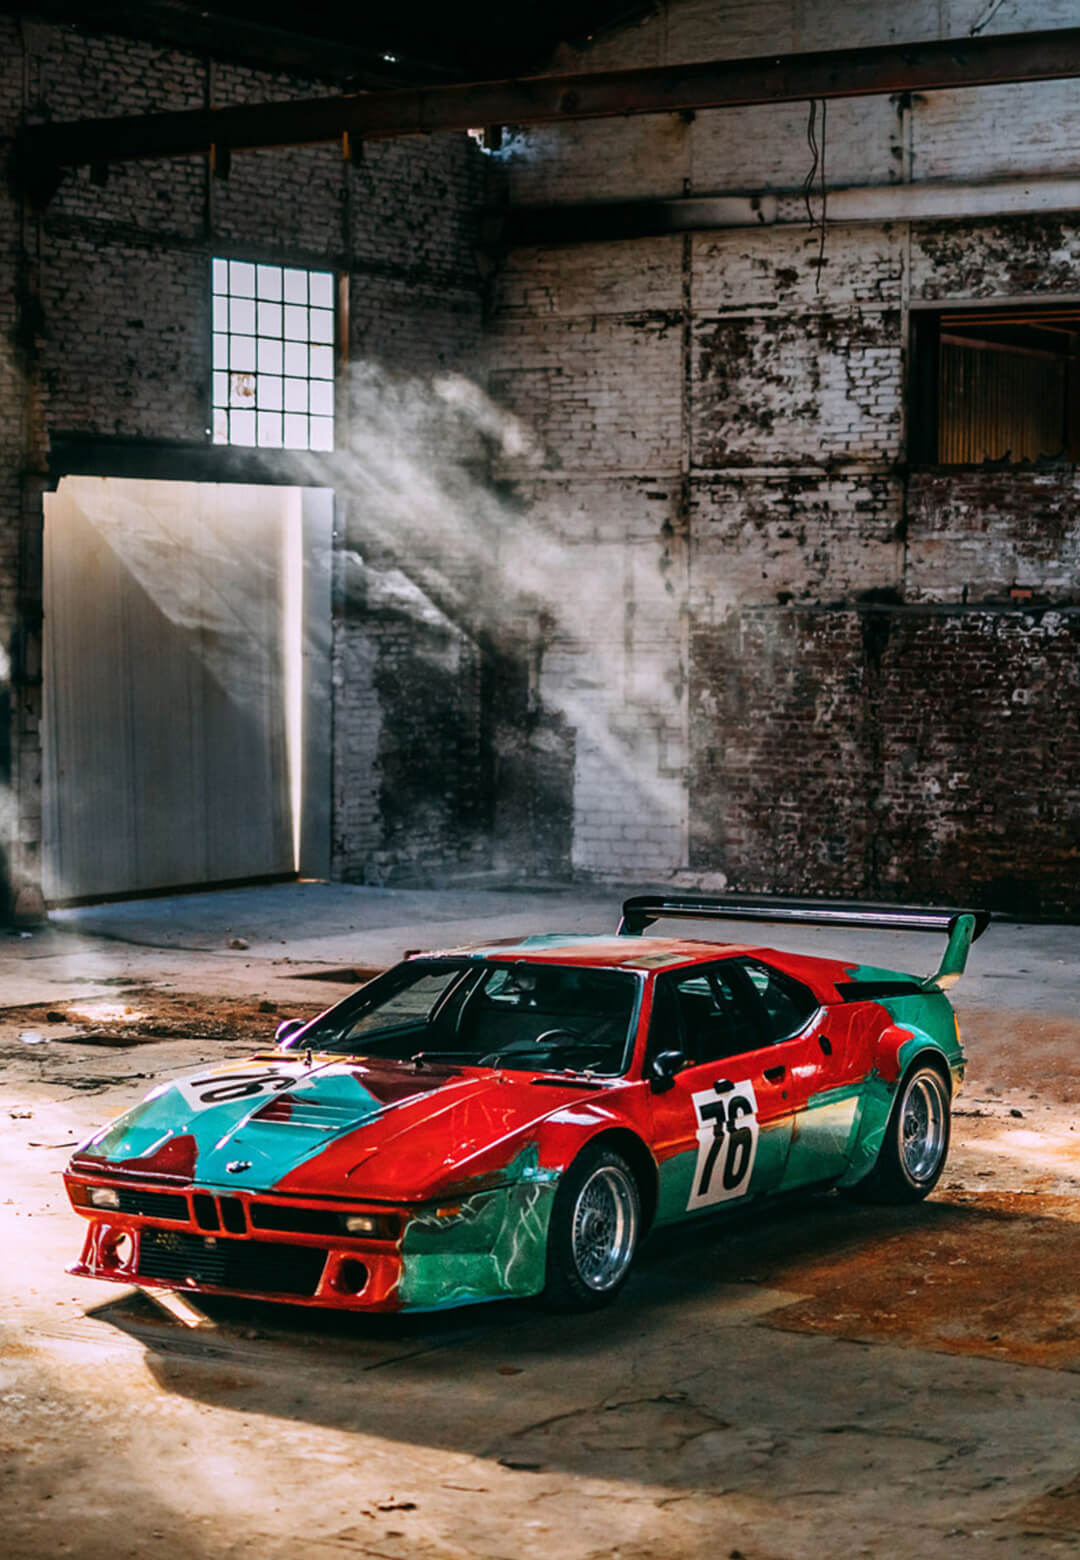 Andy Warhol's BMW Art Car, 1979 | Industrial Surface as artistic canvas | Andy Warhol | India Art Fair | STIRworld